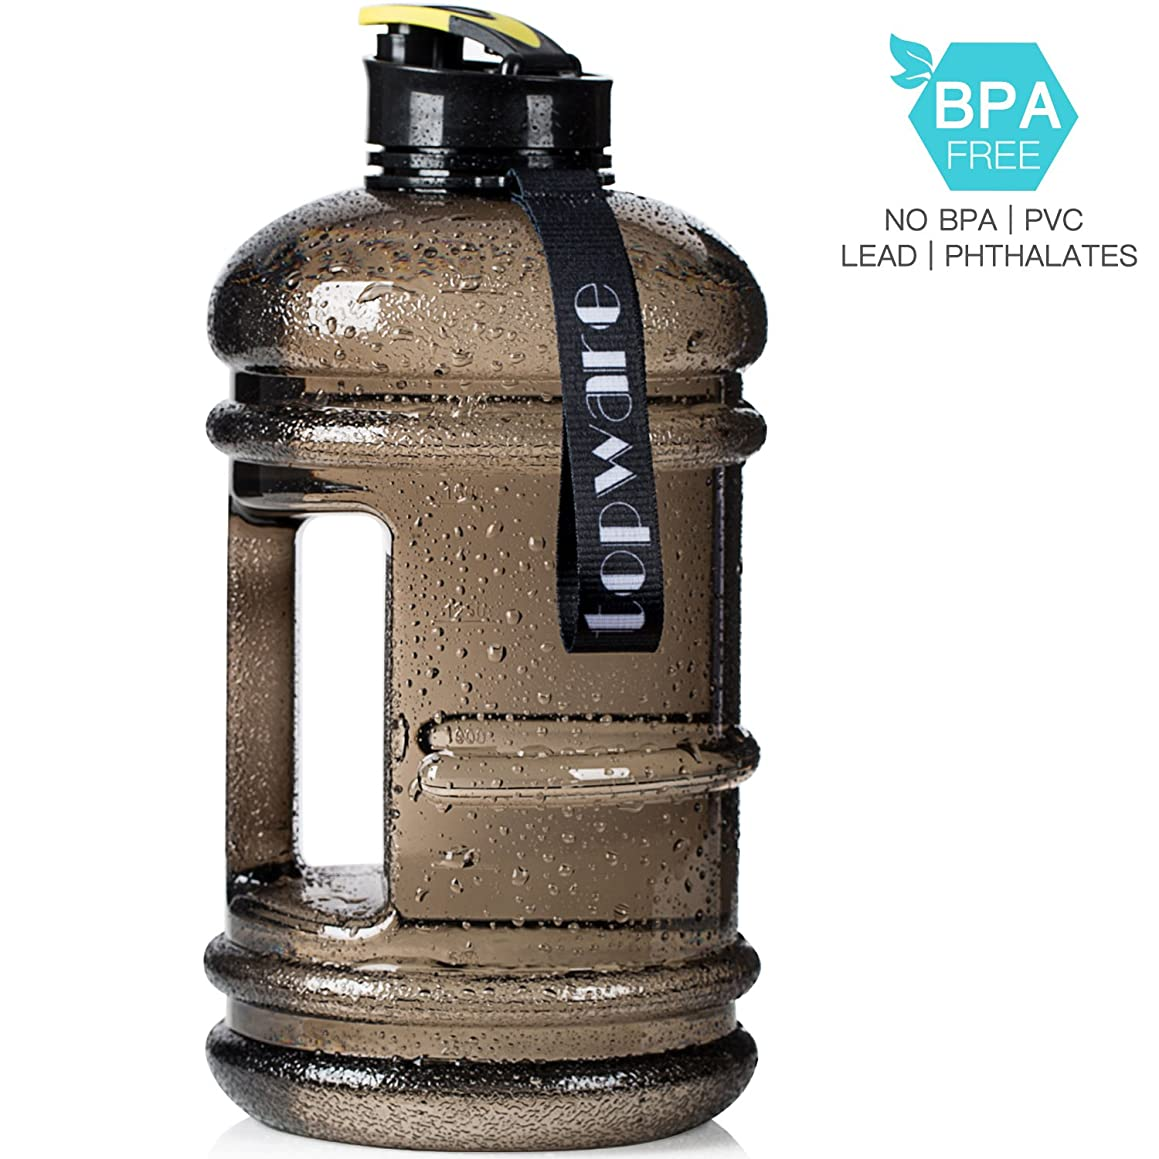 Dishwasher Safe New Material Tritan Plastic Hot Cold Water Jug Container Big Capacity 2.2L 75oz Half Gallon 1.3L 44oz 550ml Large Leakproof BPA Free Water Bottle for Fitness Camping Bicycle Gym